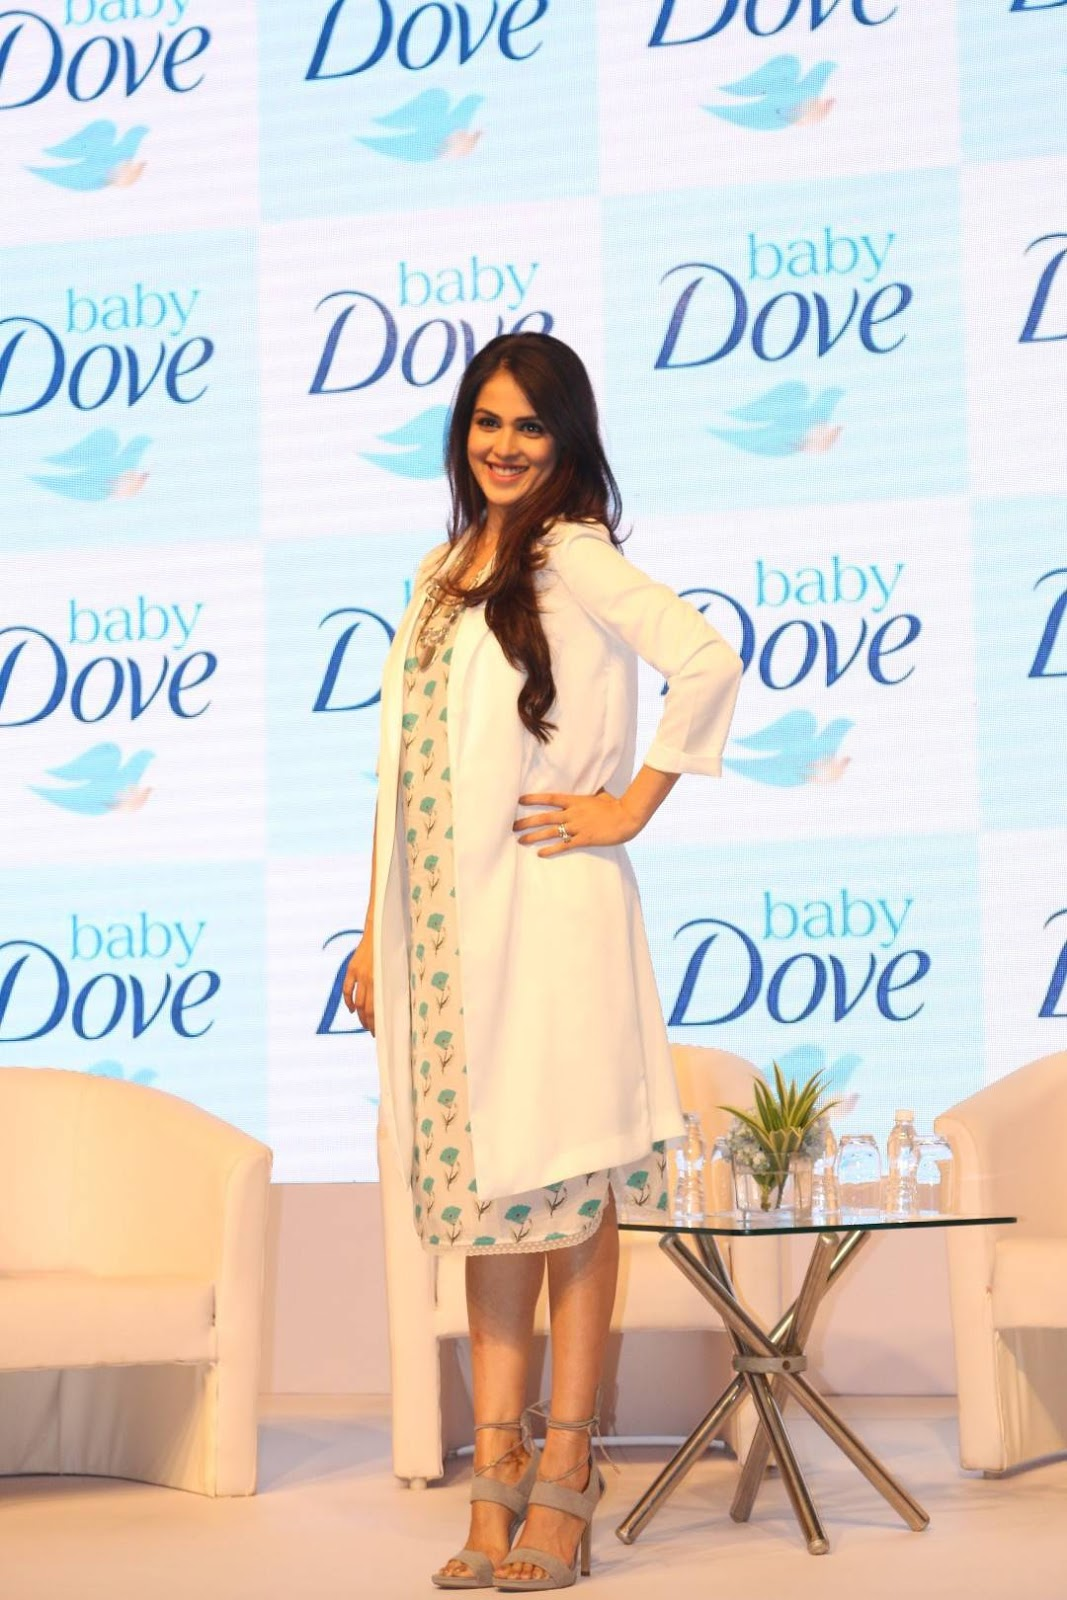 launch of dove soap Marketing plan of dove by kasi  at that time it was a very innovative concept that a non-soap cleanser is available which allows users to get rid of skin dirt.